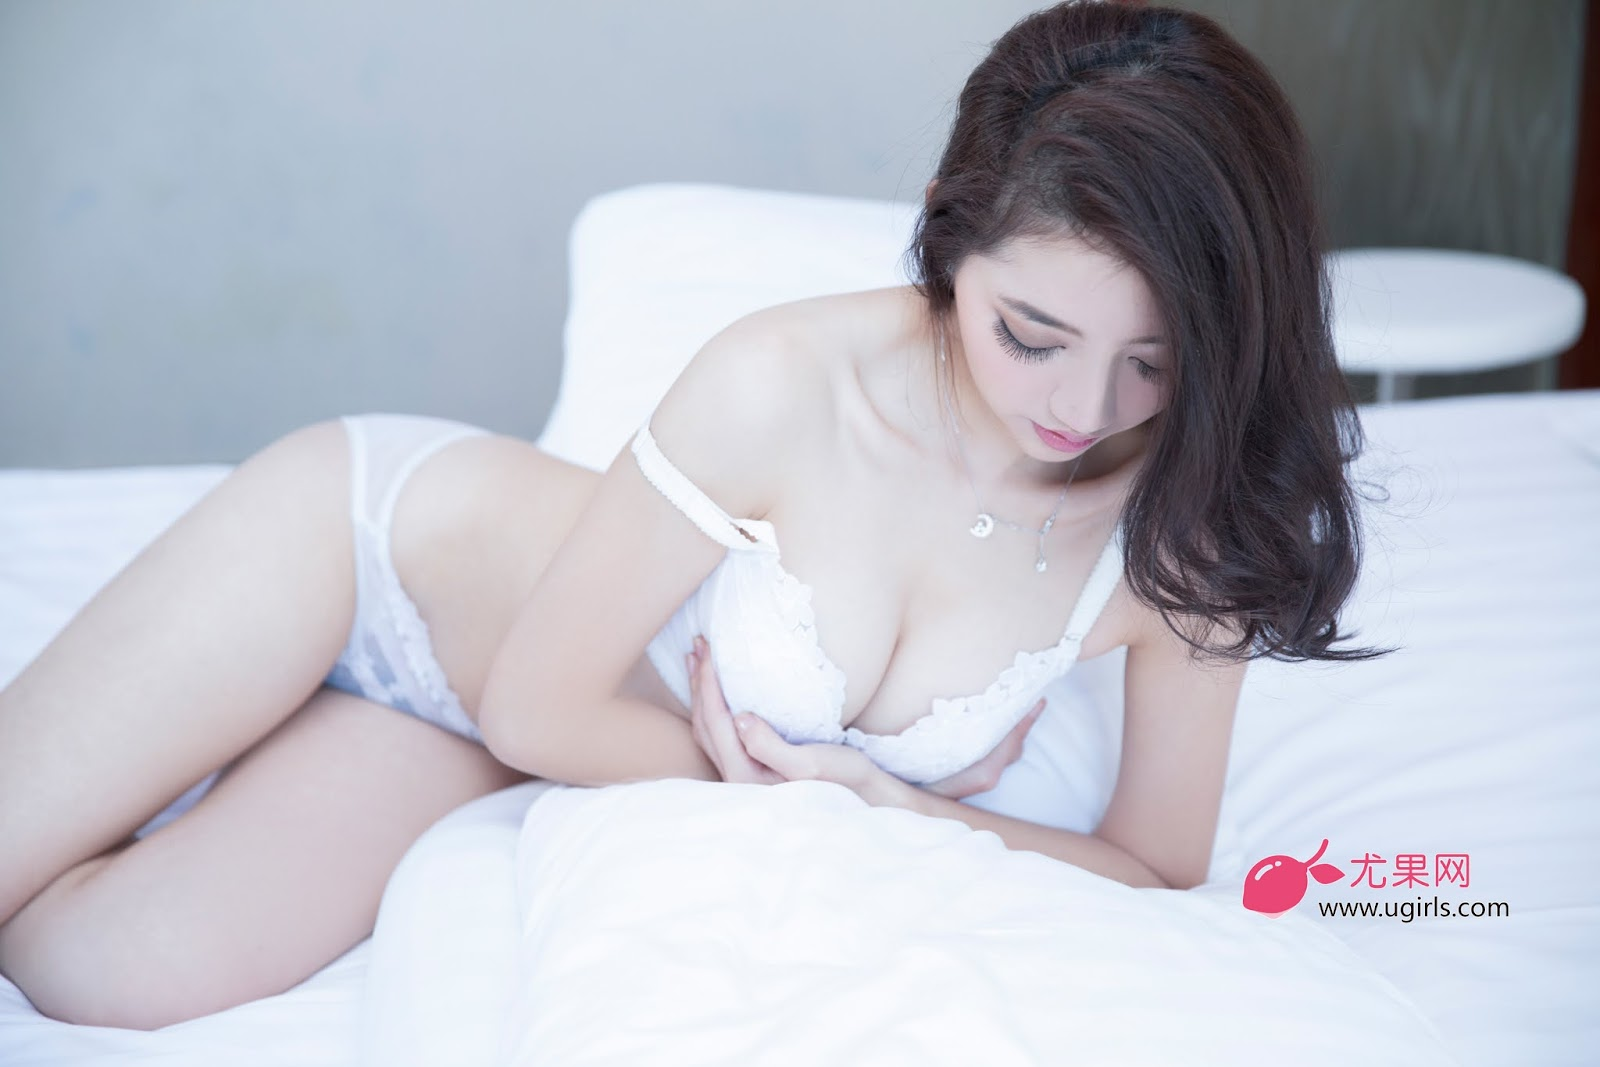 A14A5476 - Hot Model UGIRLS NO.8